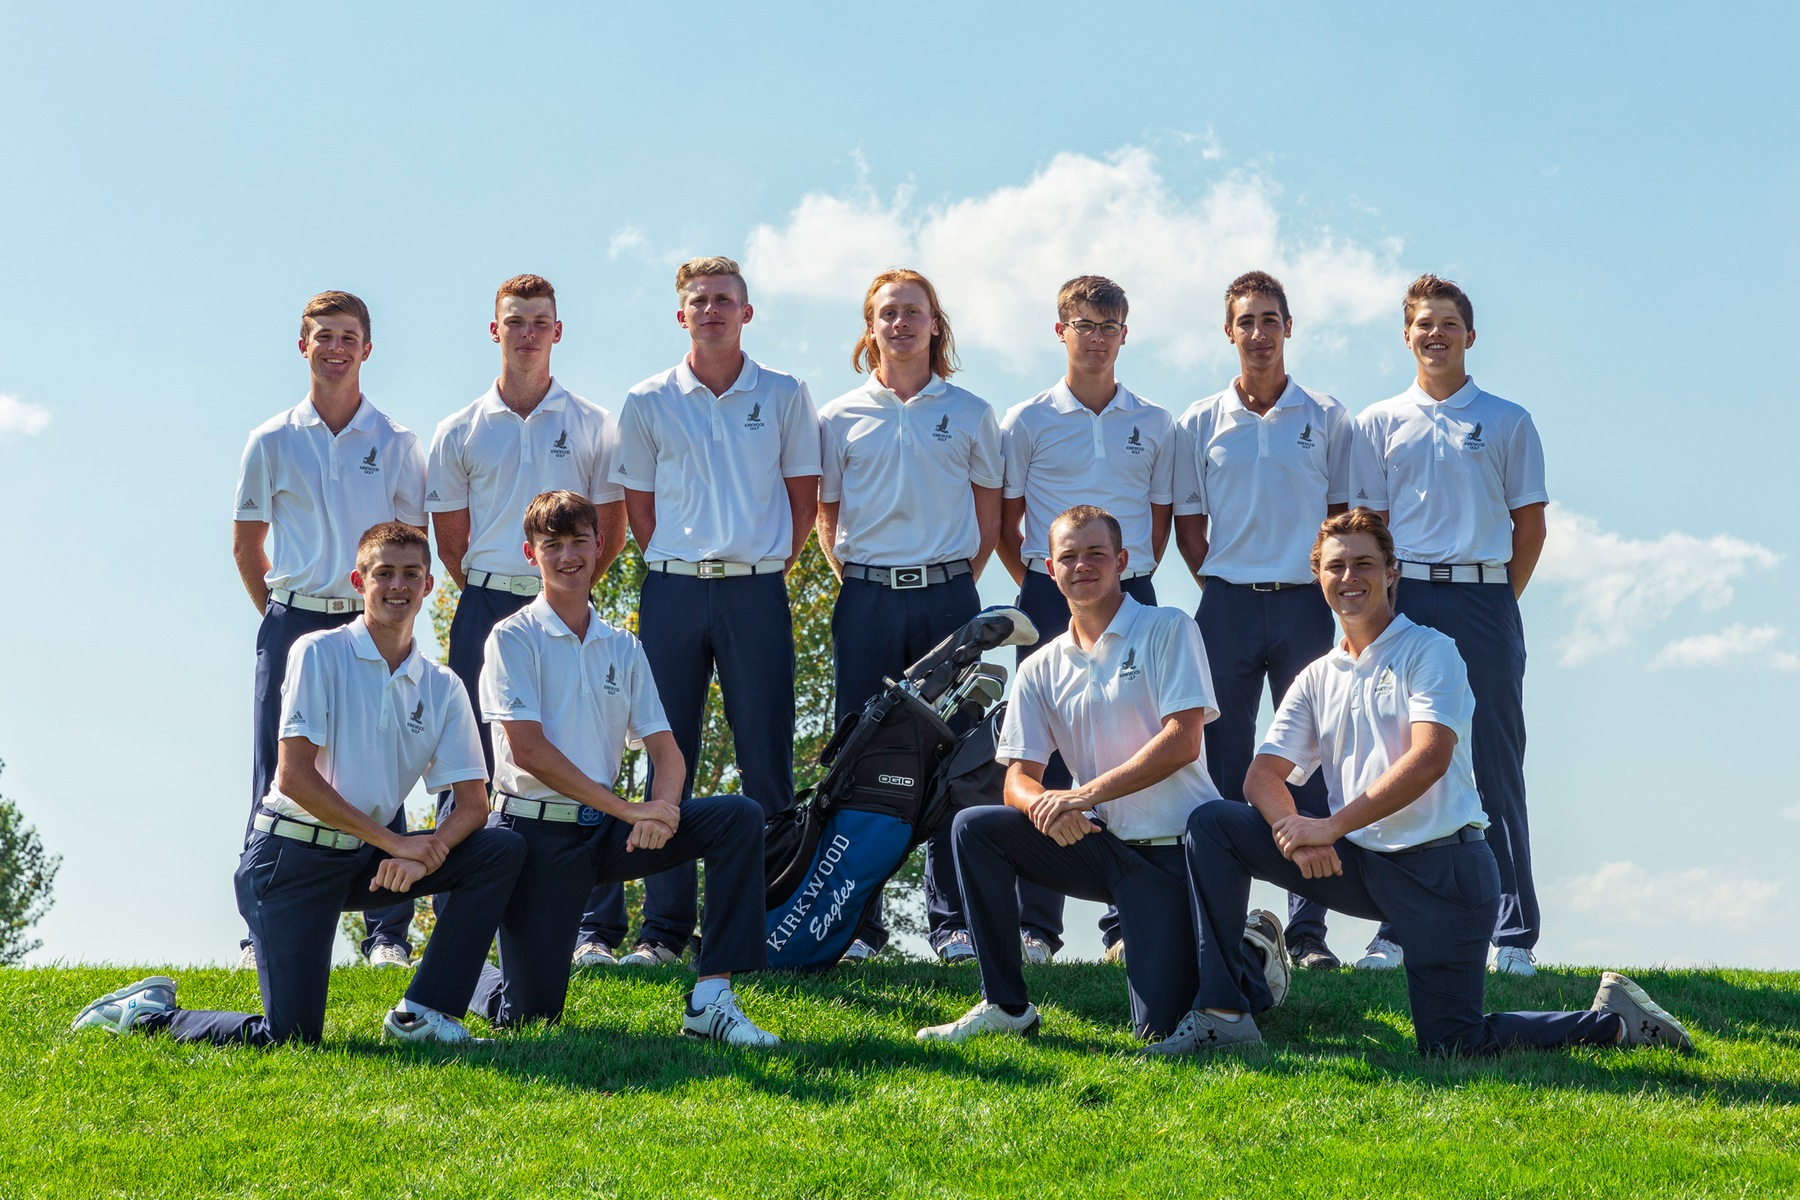 Peters, Eagles win National Preview Golf Tournament